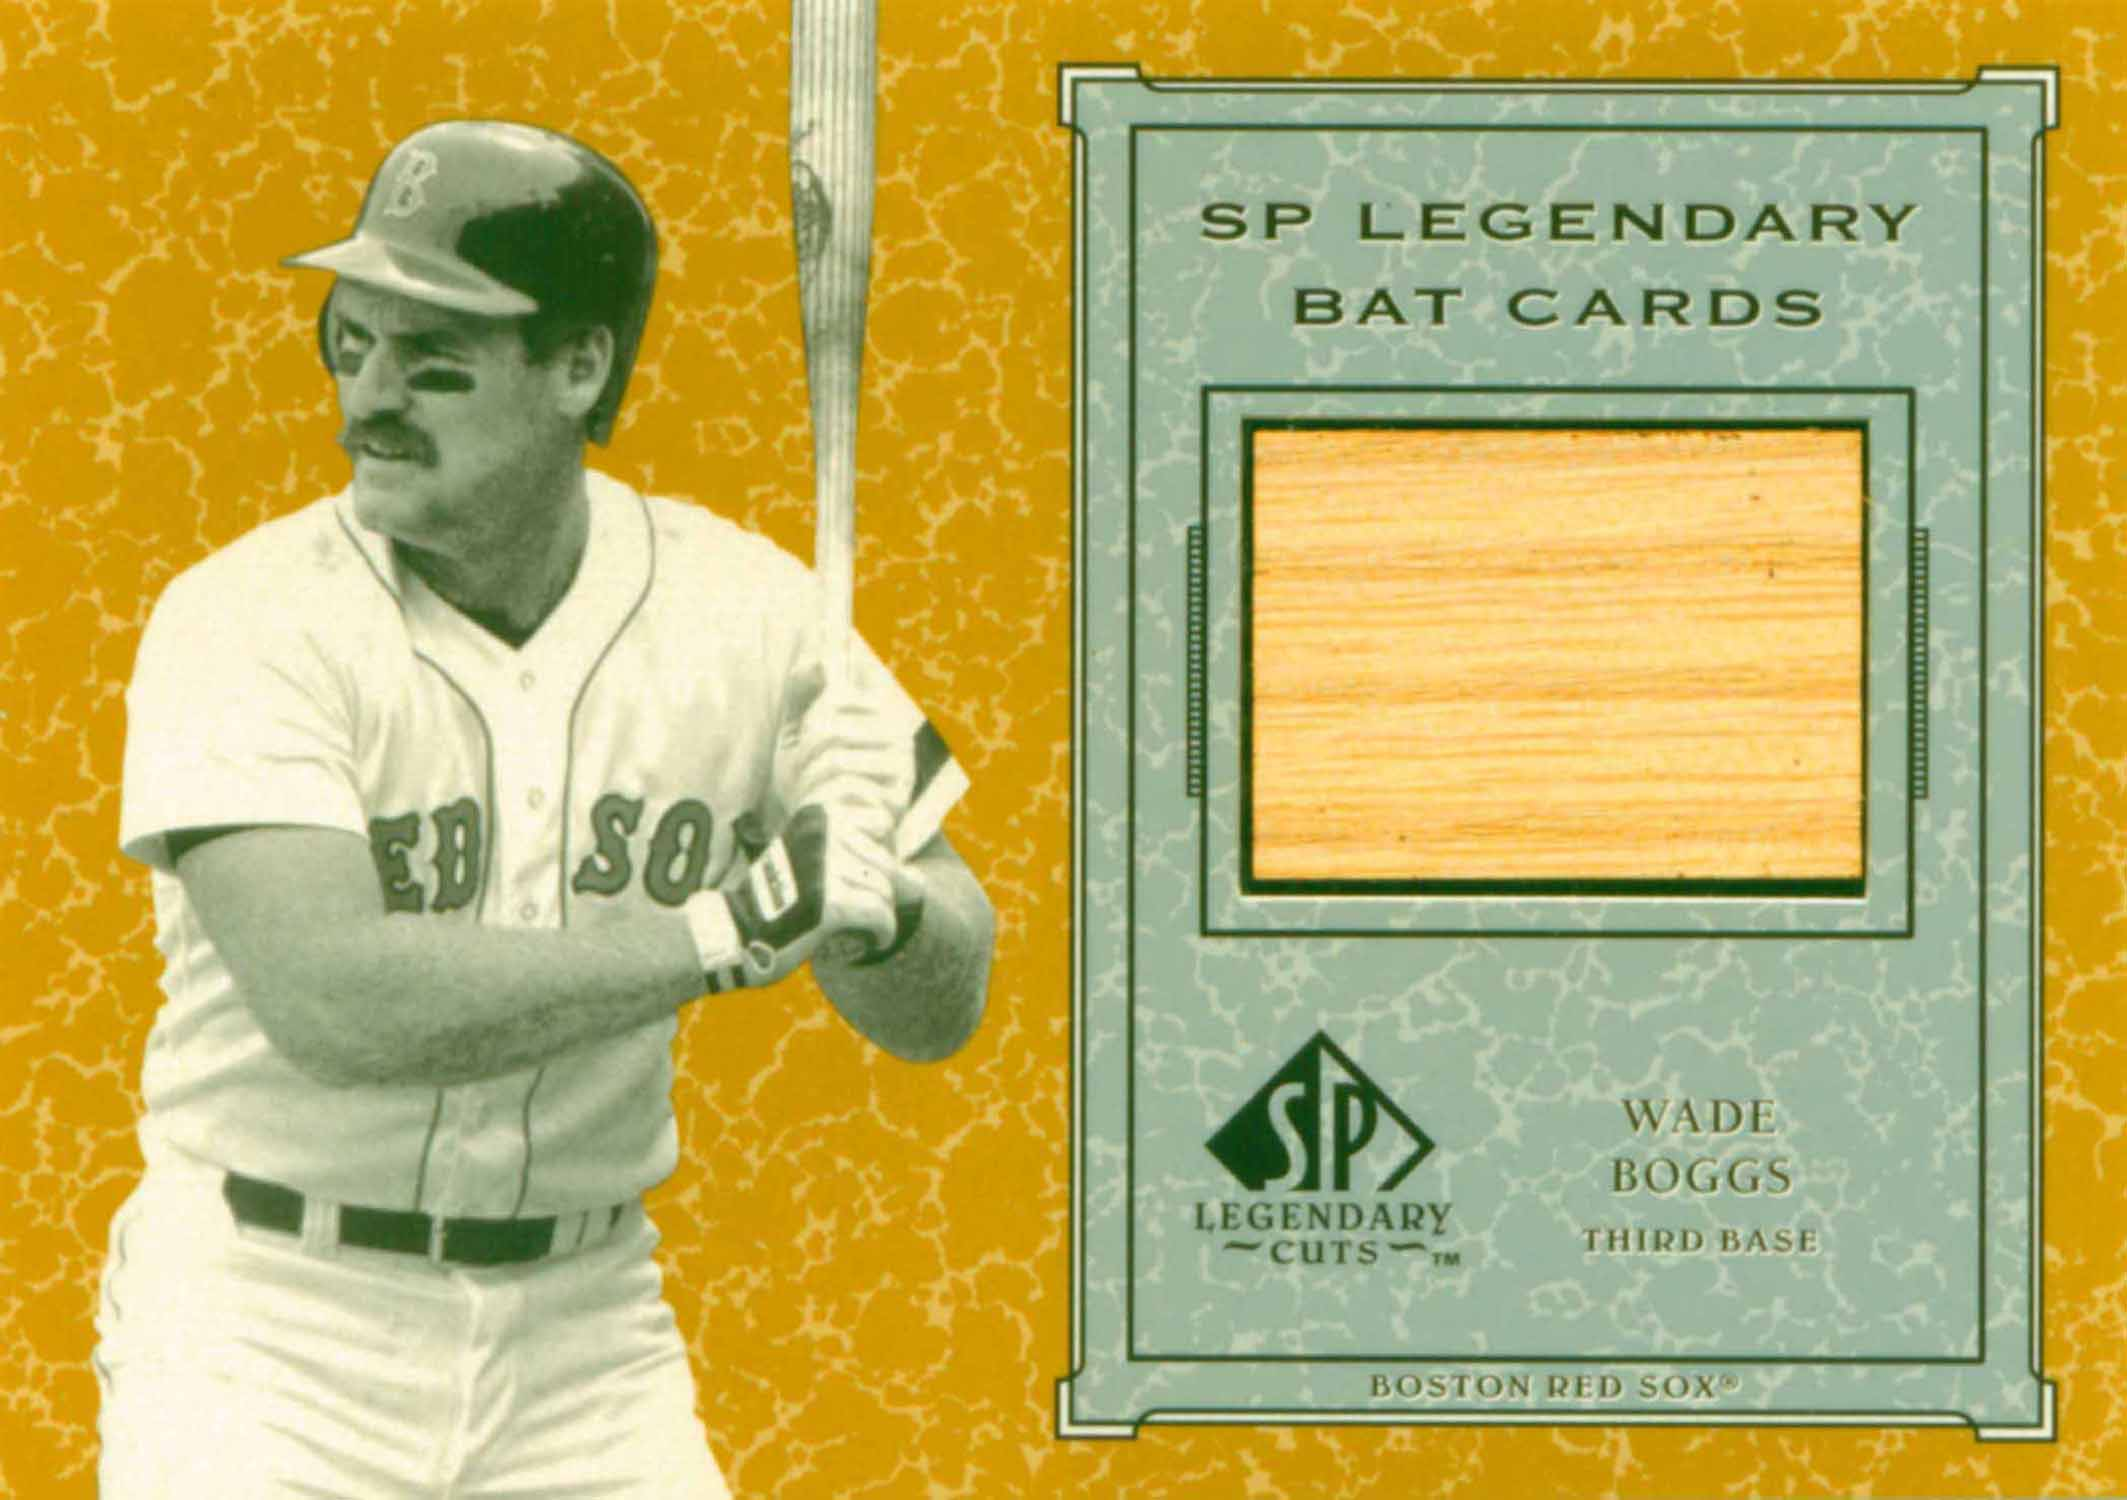 2001 SP Legendary Cuts Game Bat